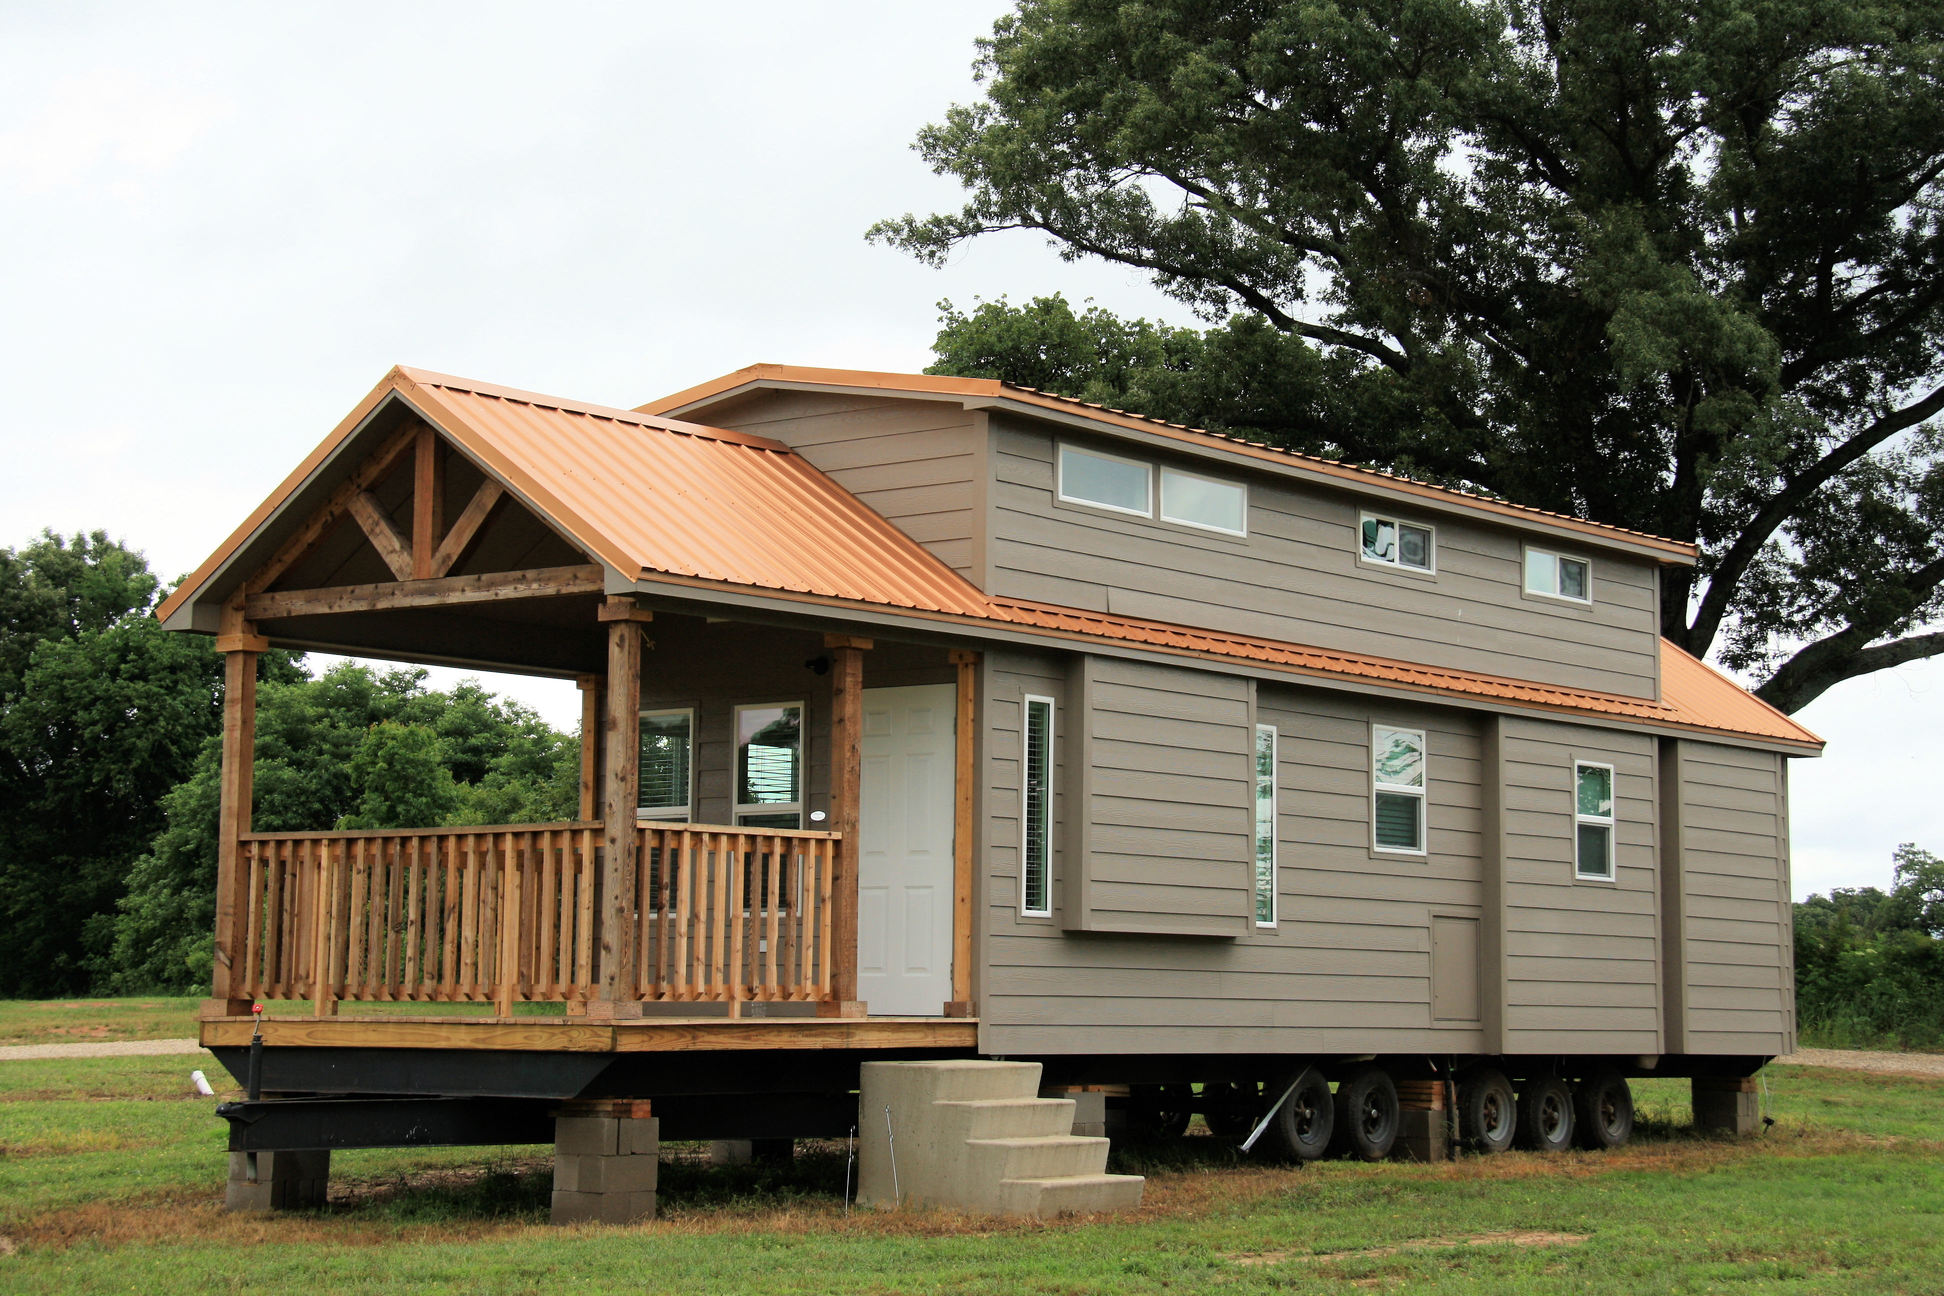 Vintage grace new park model for sale texas for Tiny house with porch